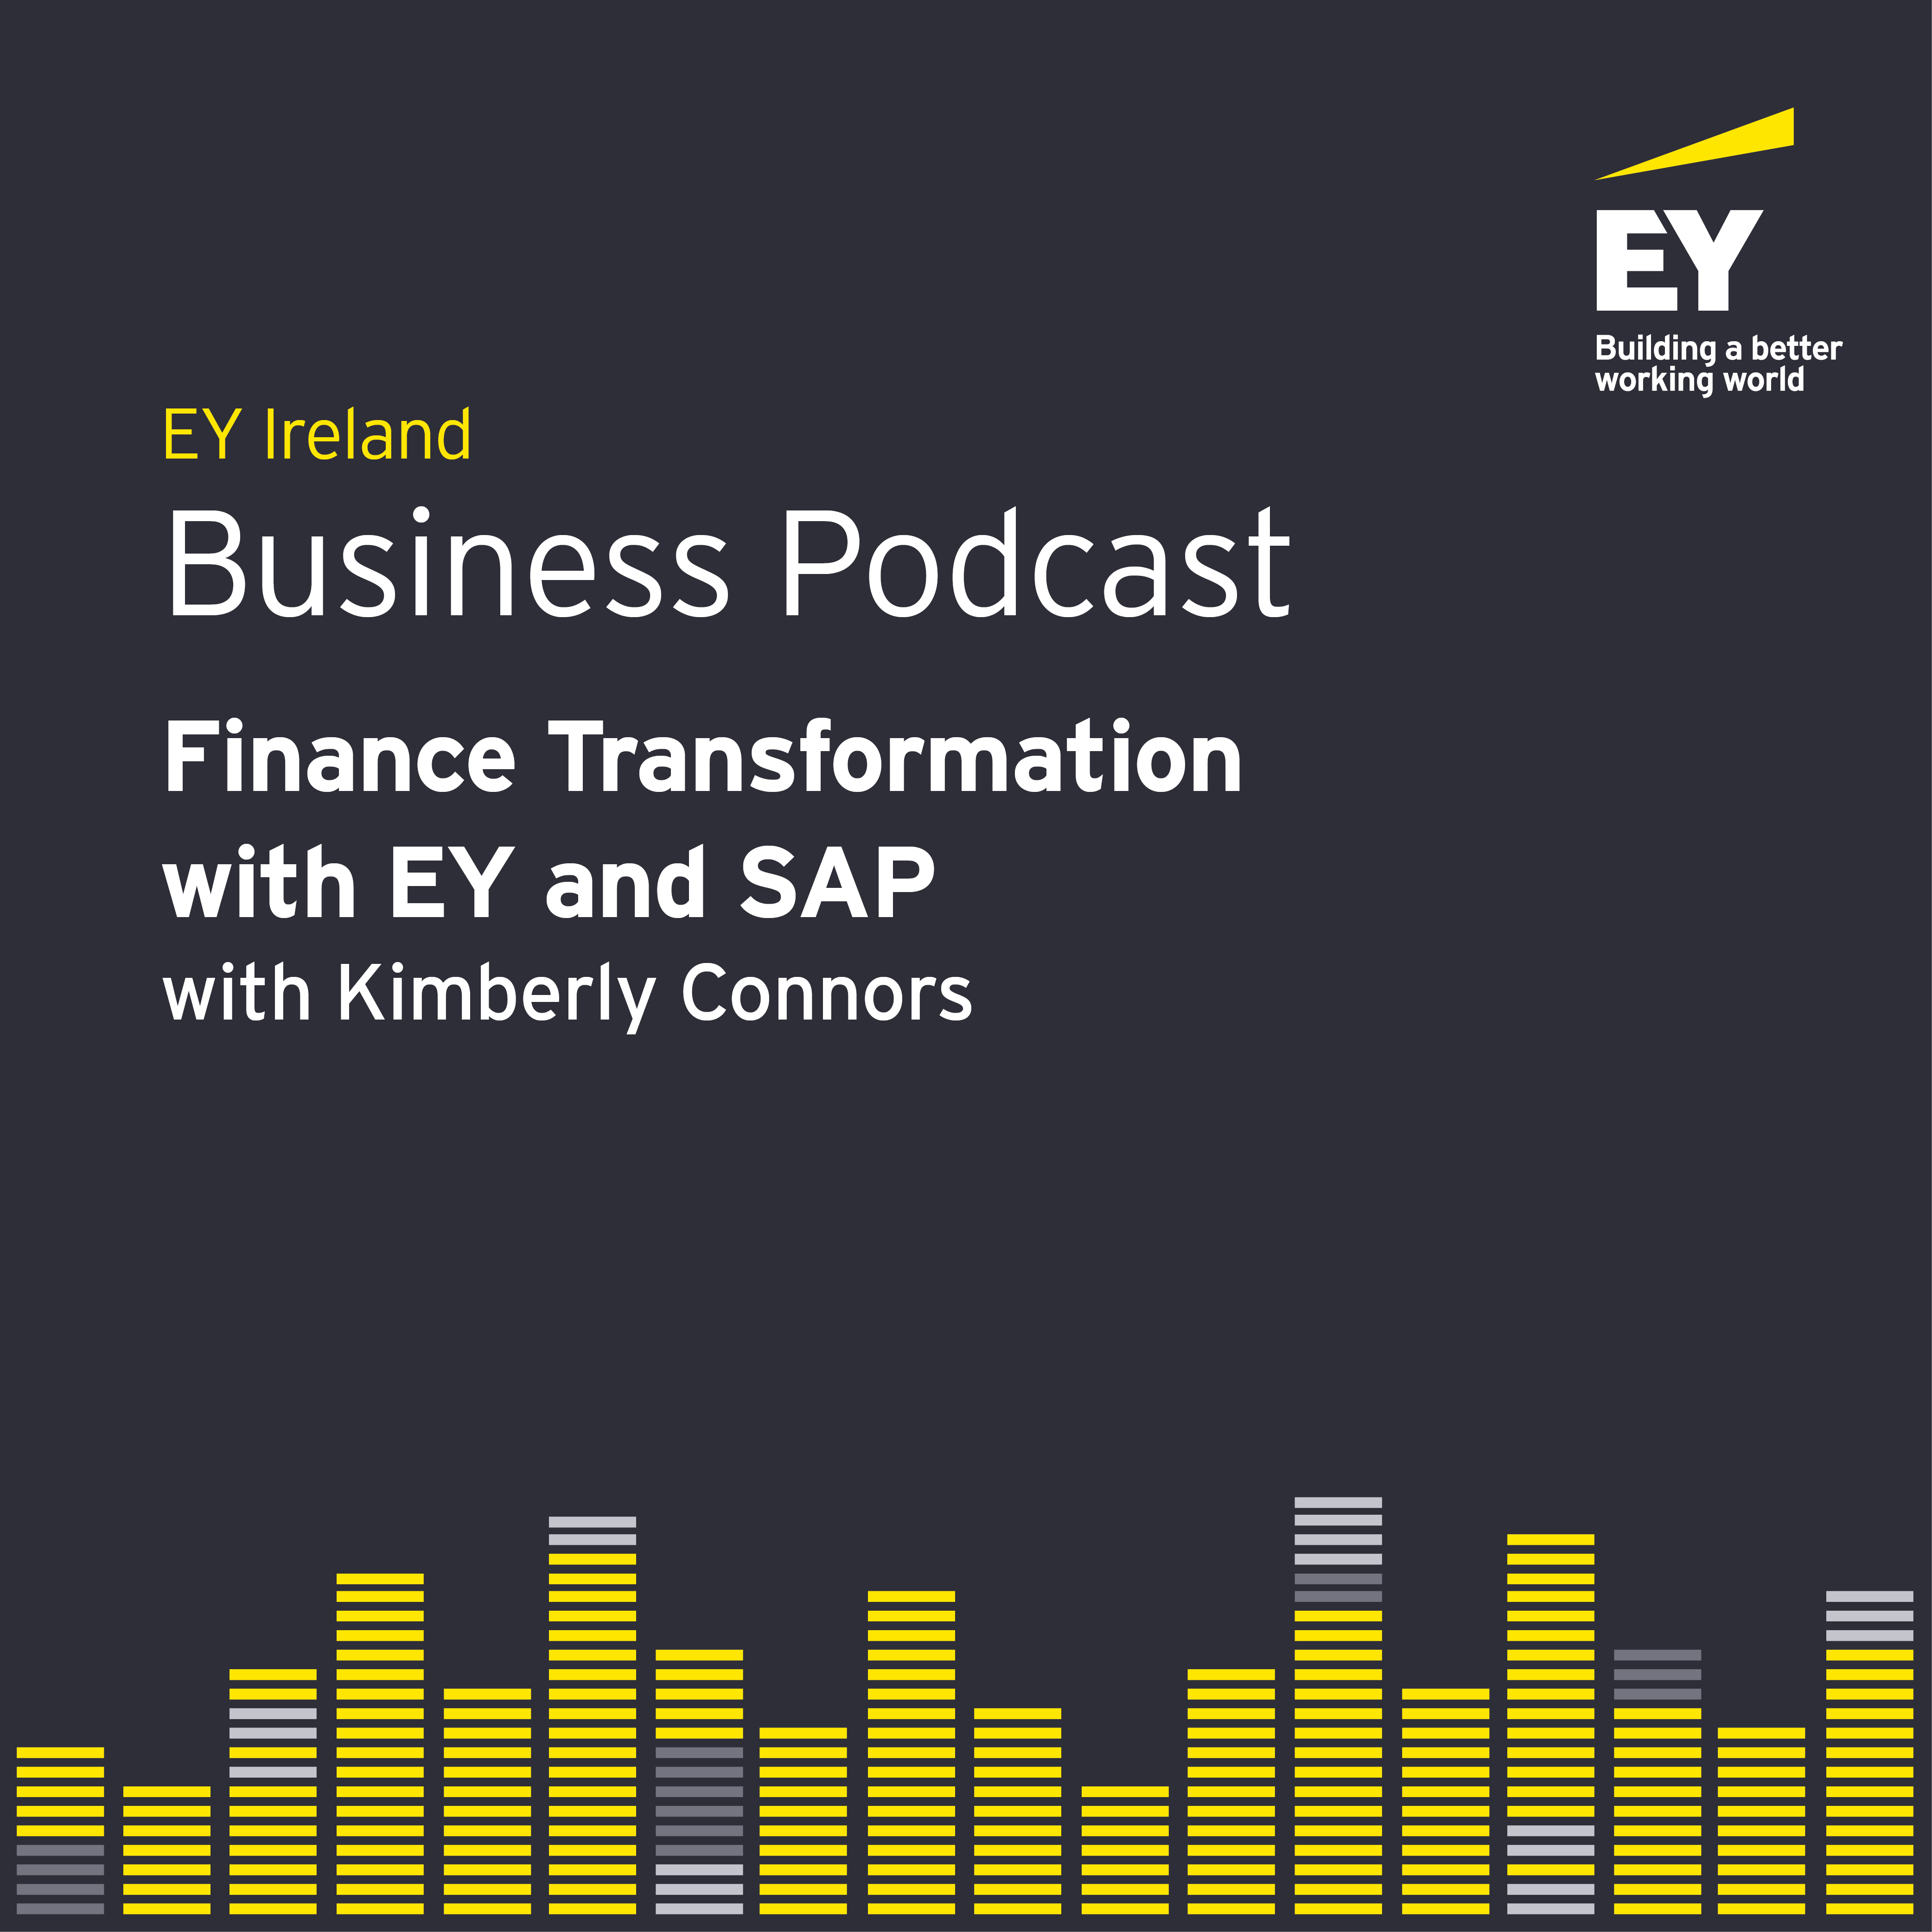 Finance Transformation with Kimberly Connors